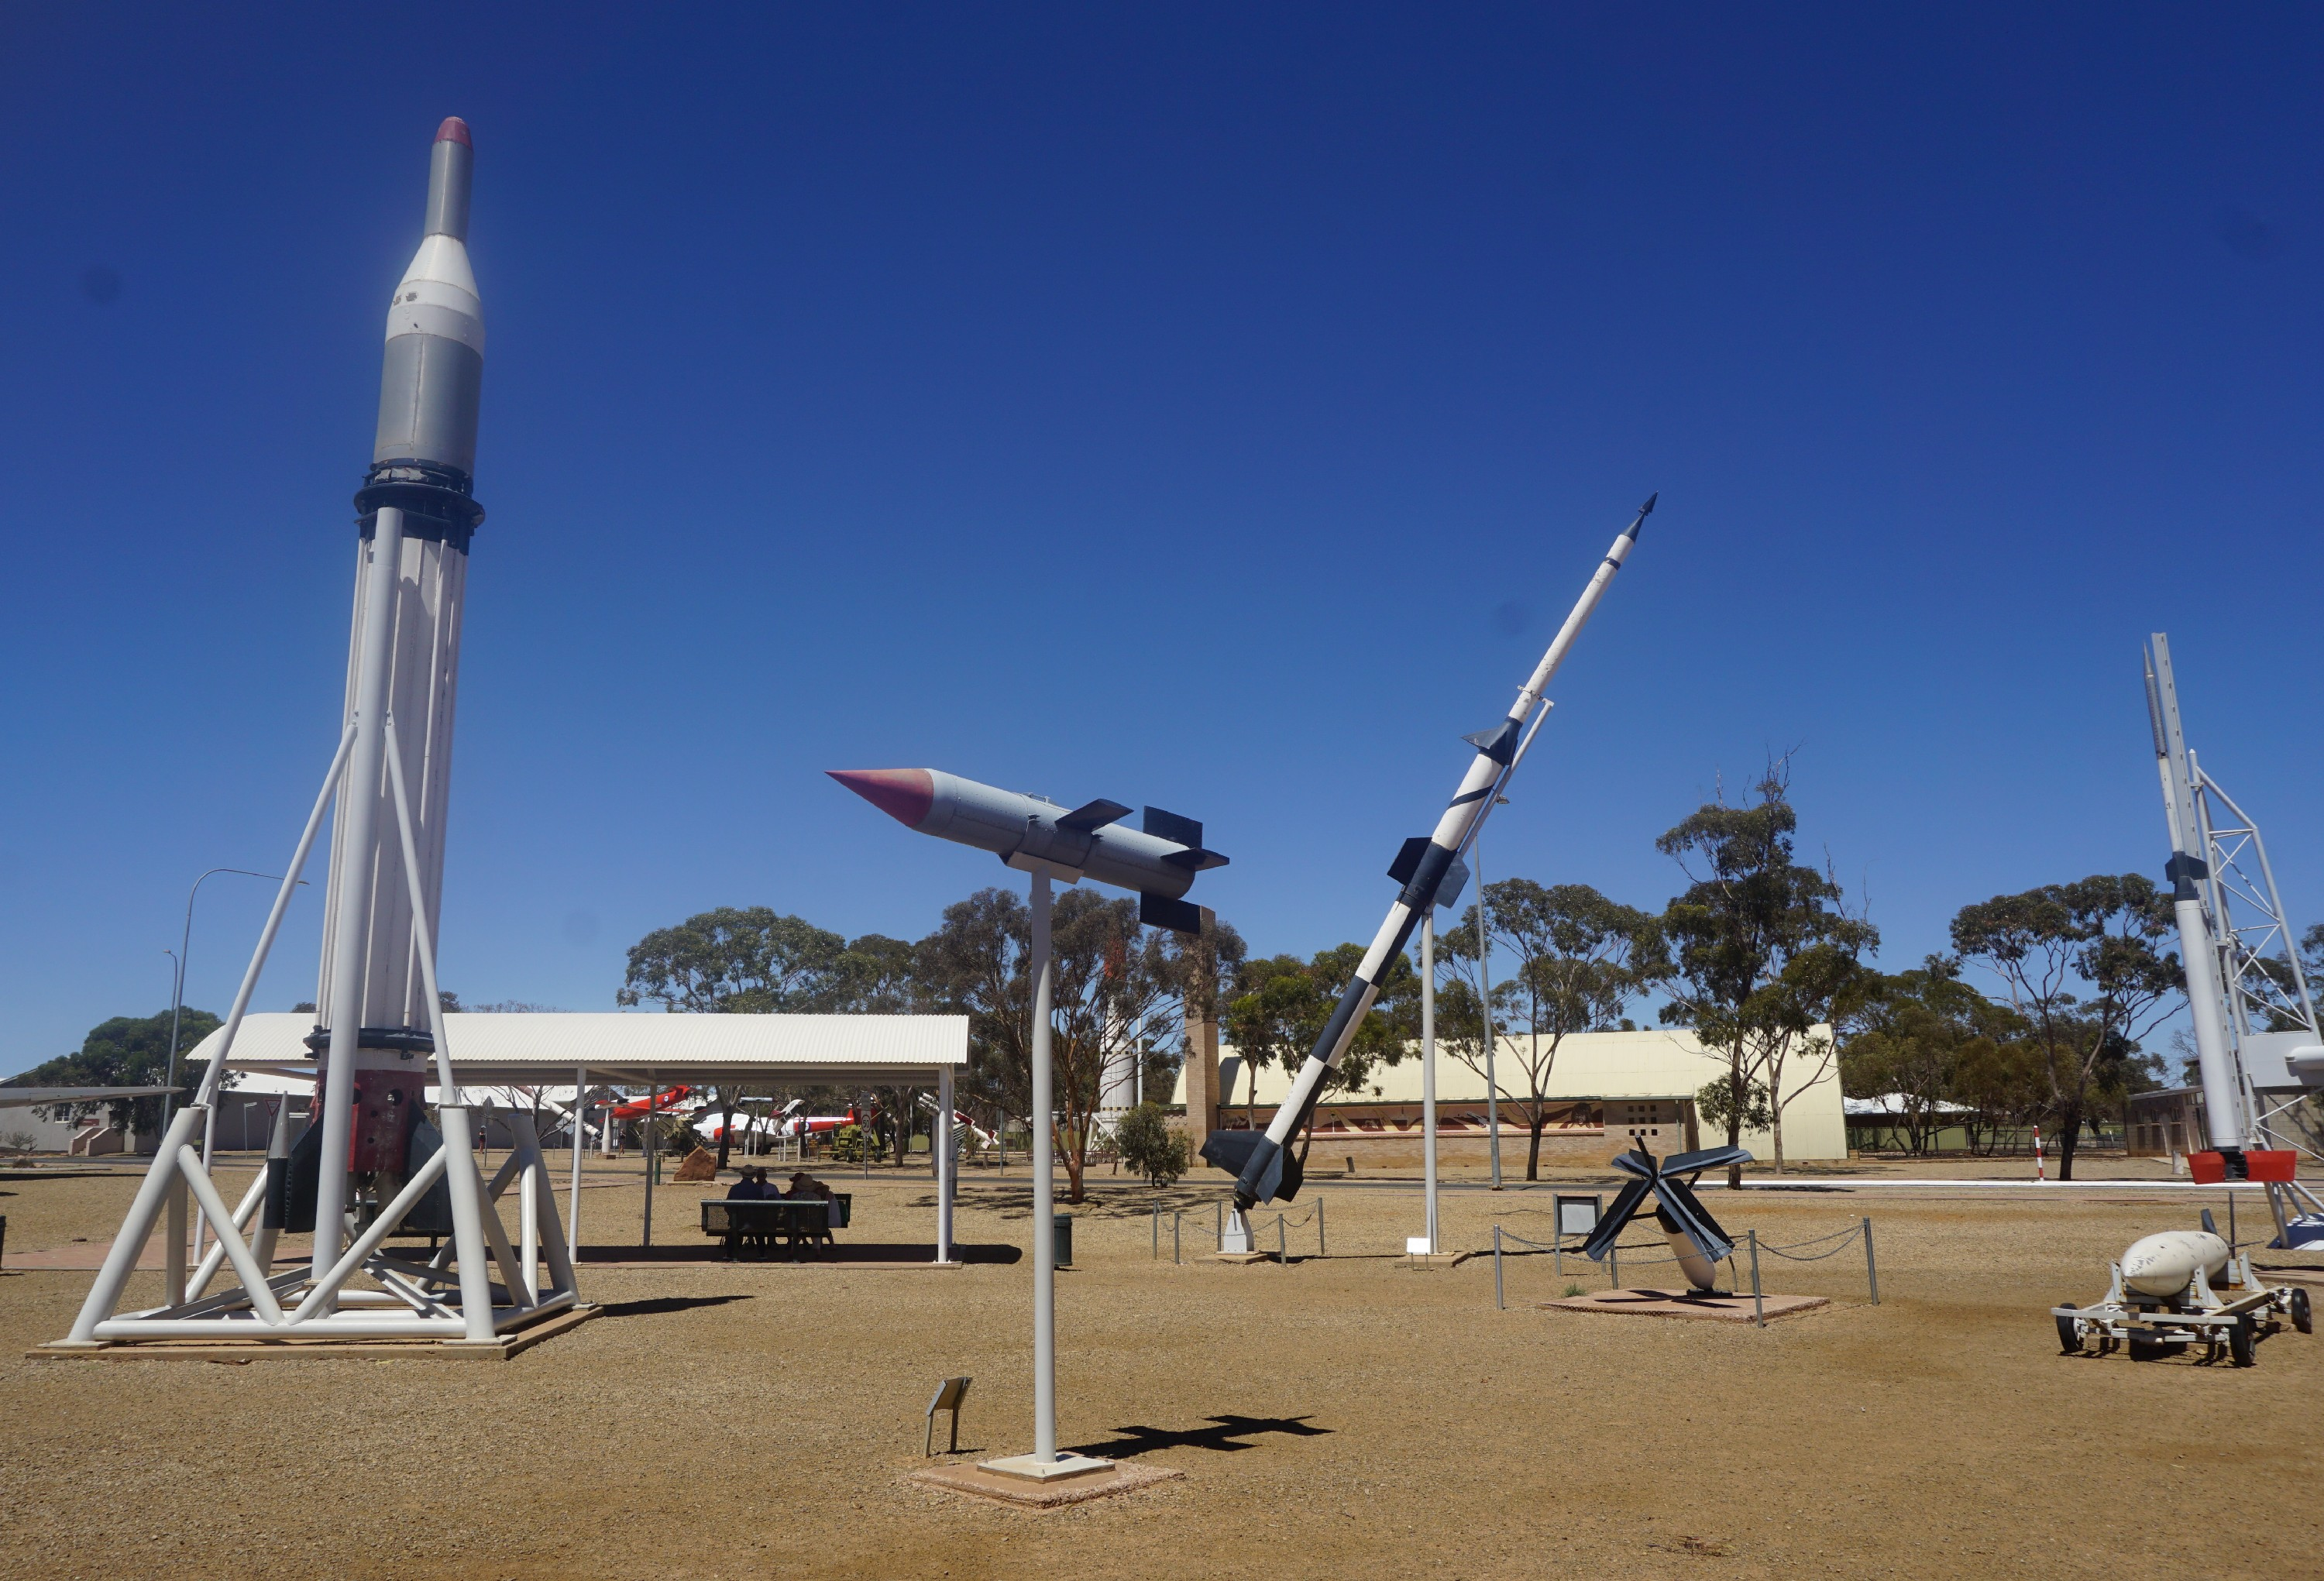 Spaceships and rockets in Woomera